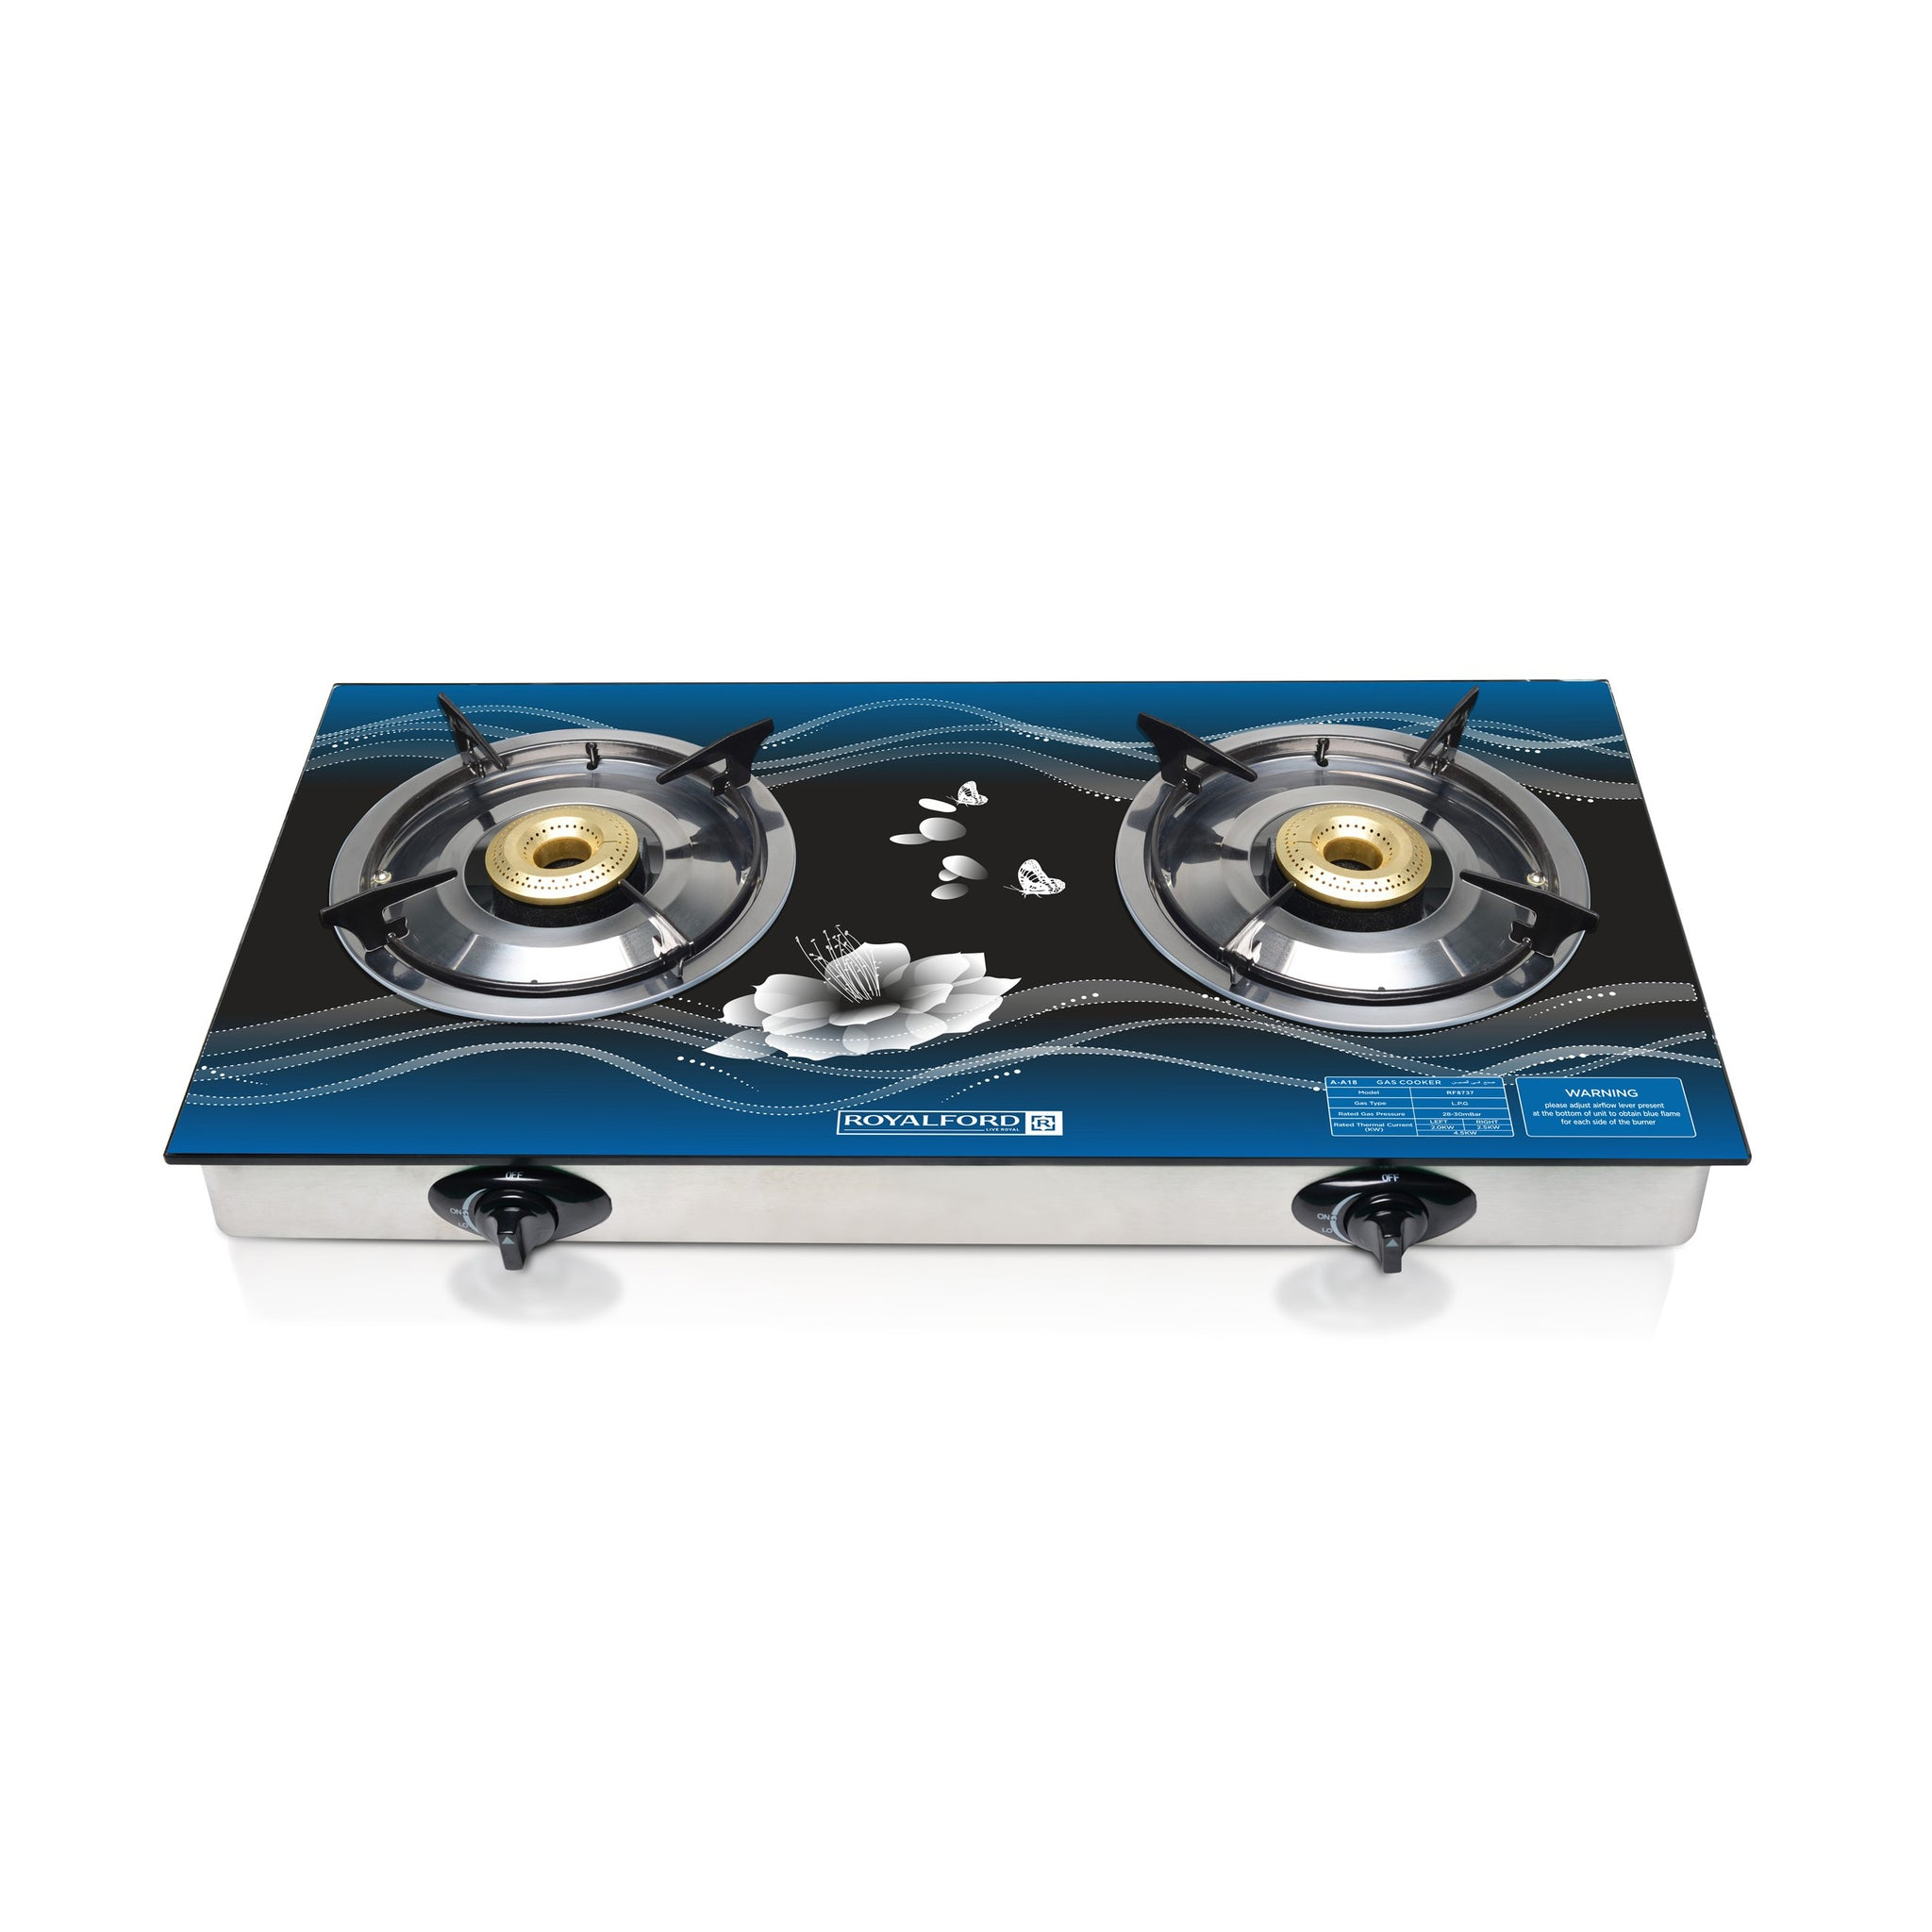 Royalford RF8737 Glass Top Double Gas Burner - Ergonomic Design, Automatic Ignition, 2 Heating Zones | Stainless Meat Frame & Tray with Glass Top | Easy to Clean